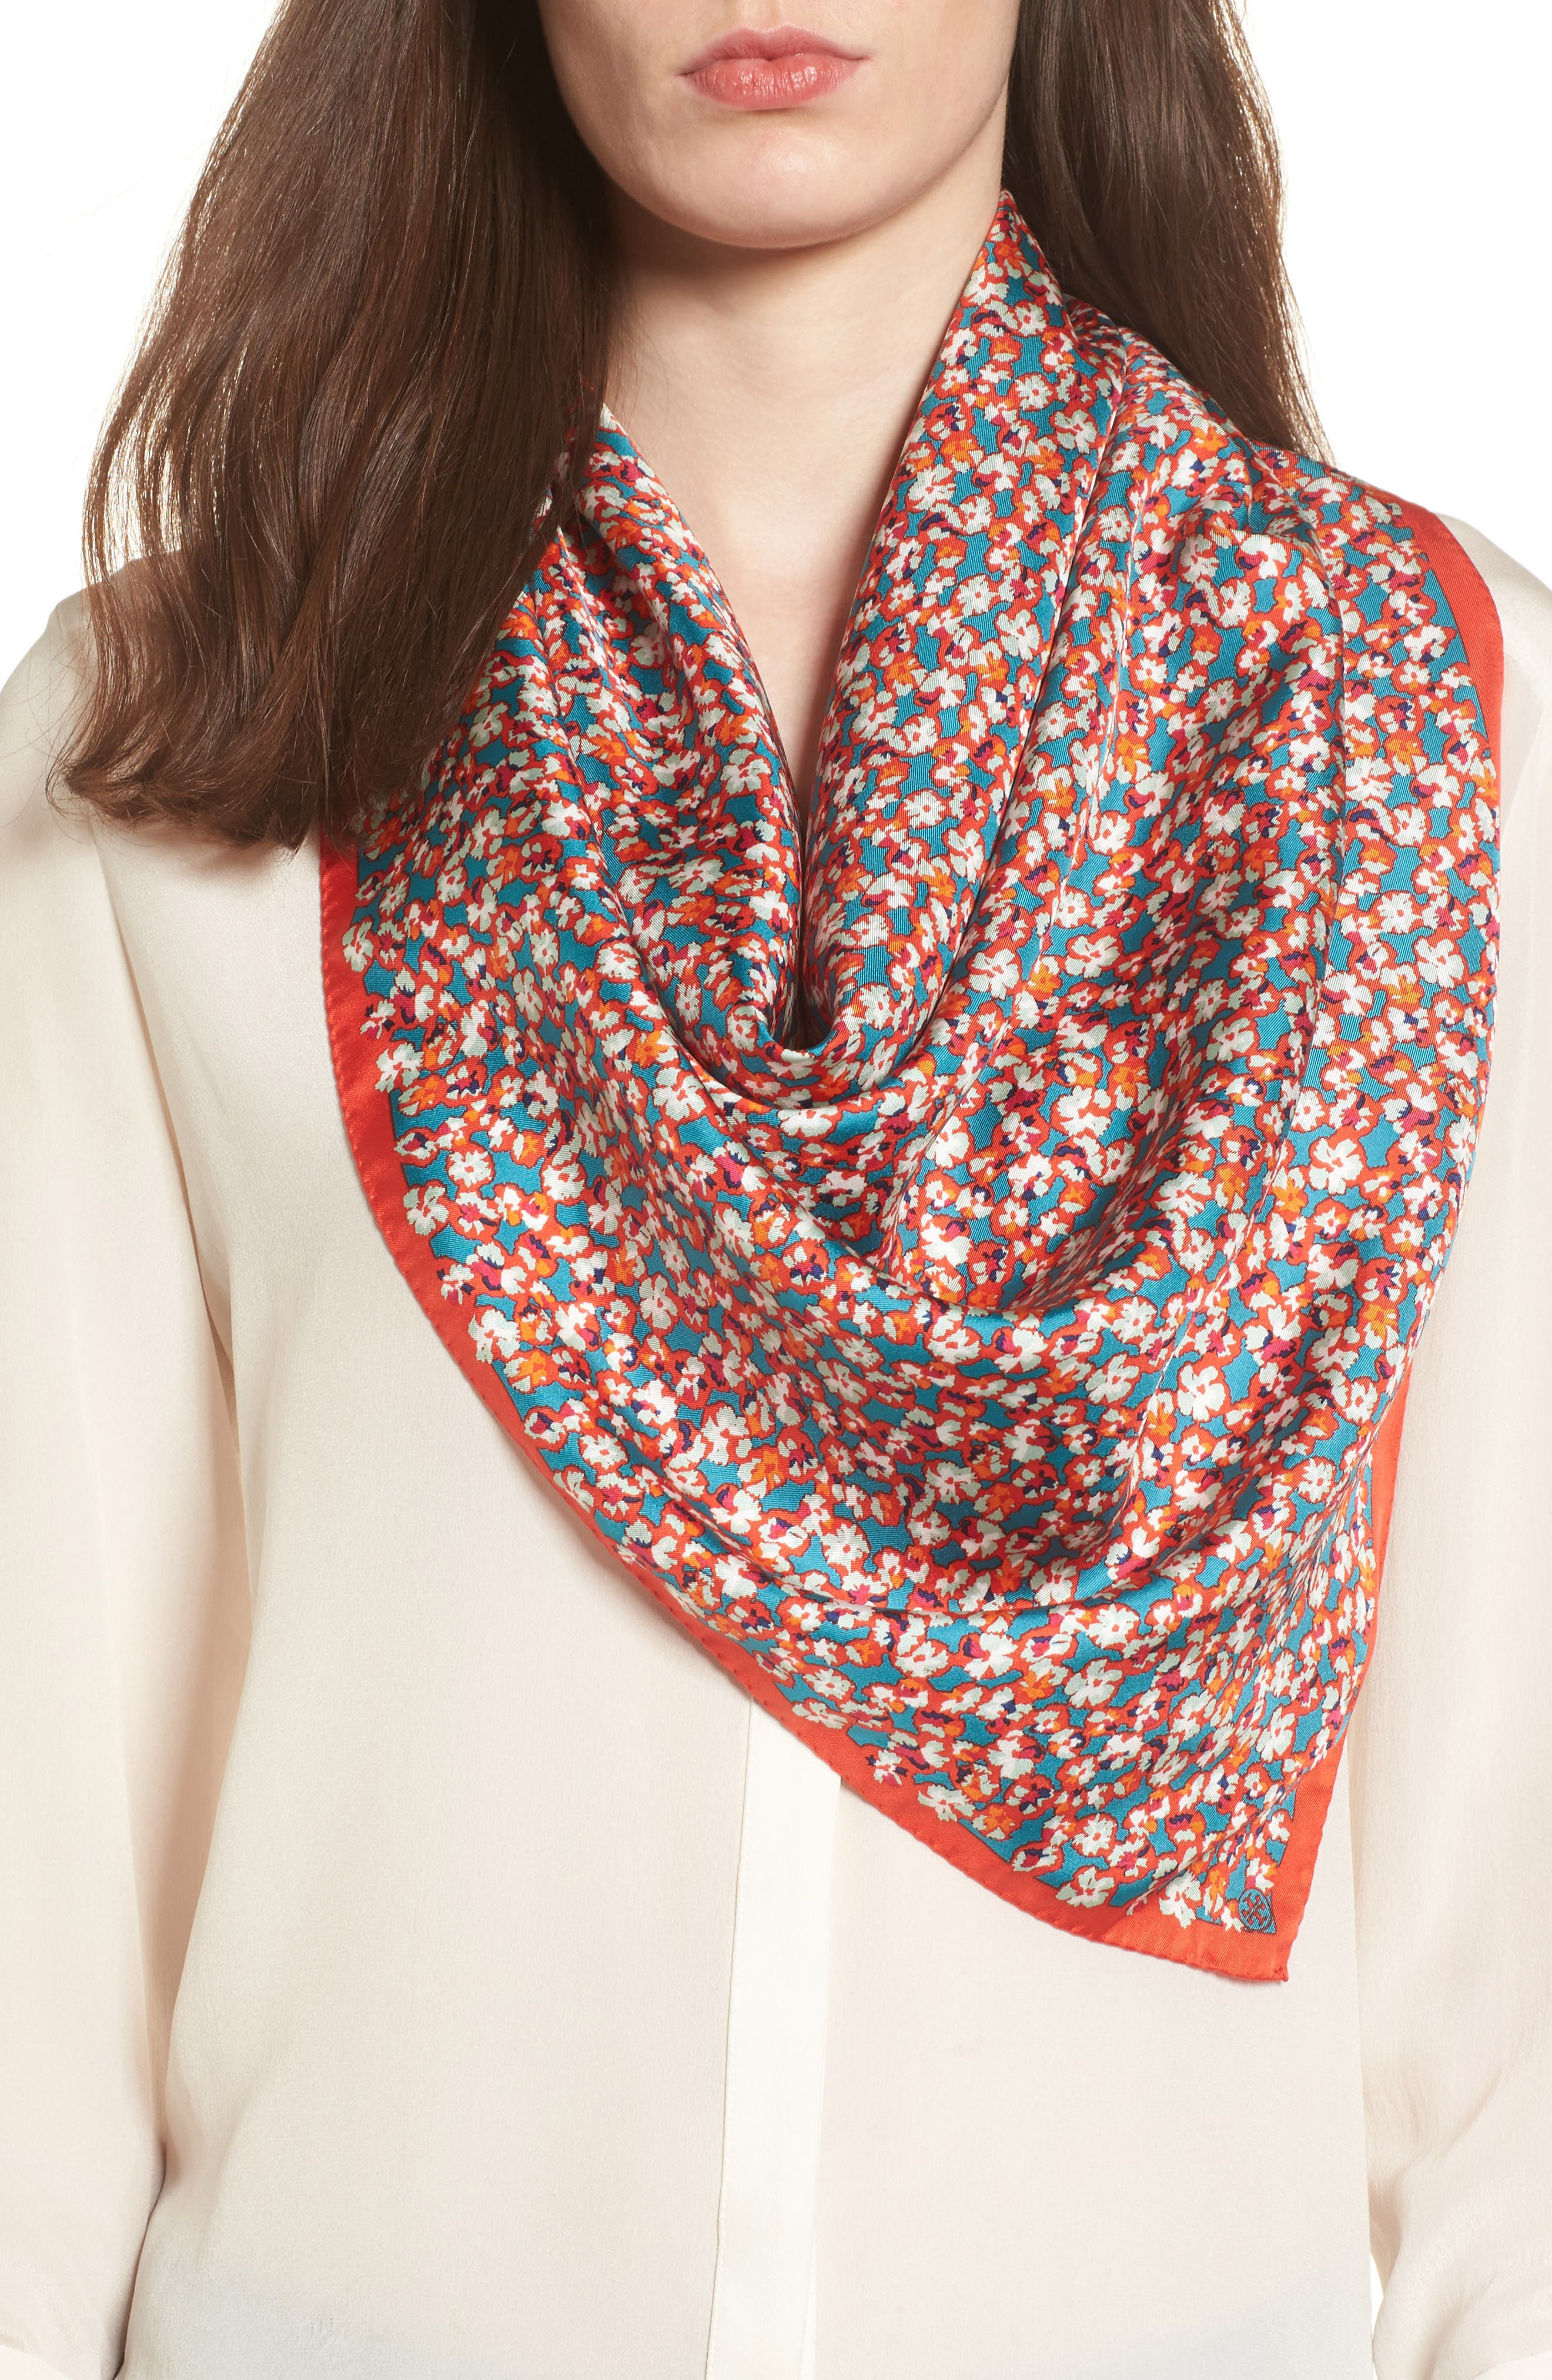 Carnation Silk Square Scarf,                             Main thumbnail 1, color,                             600